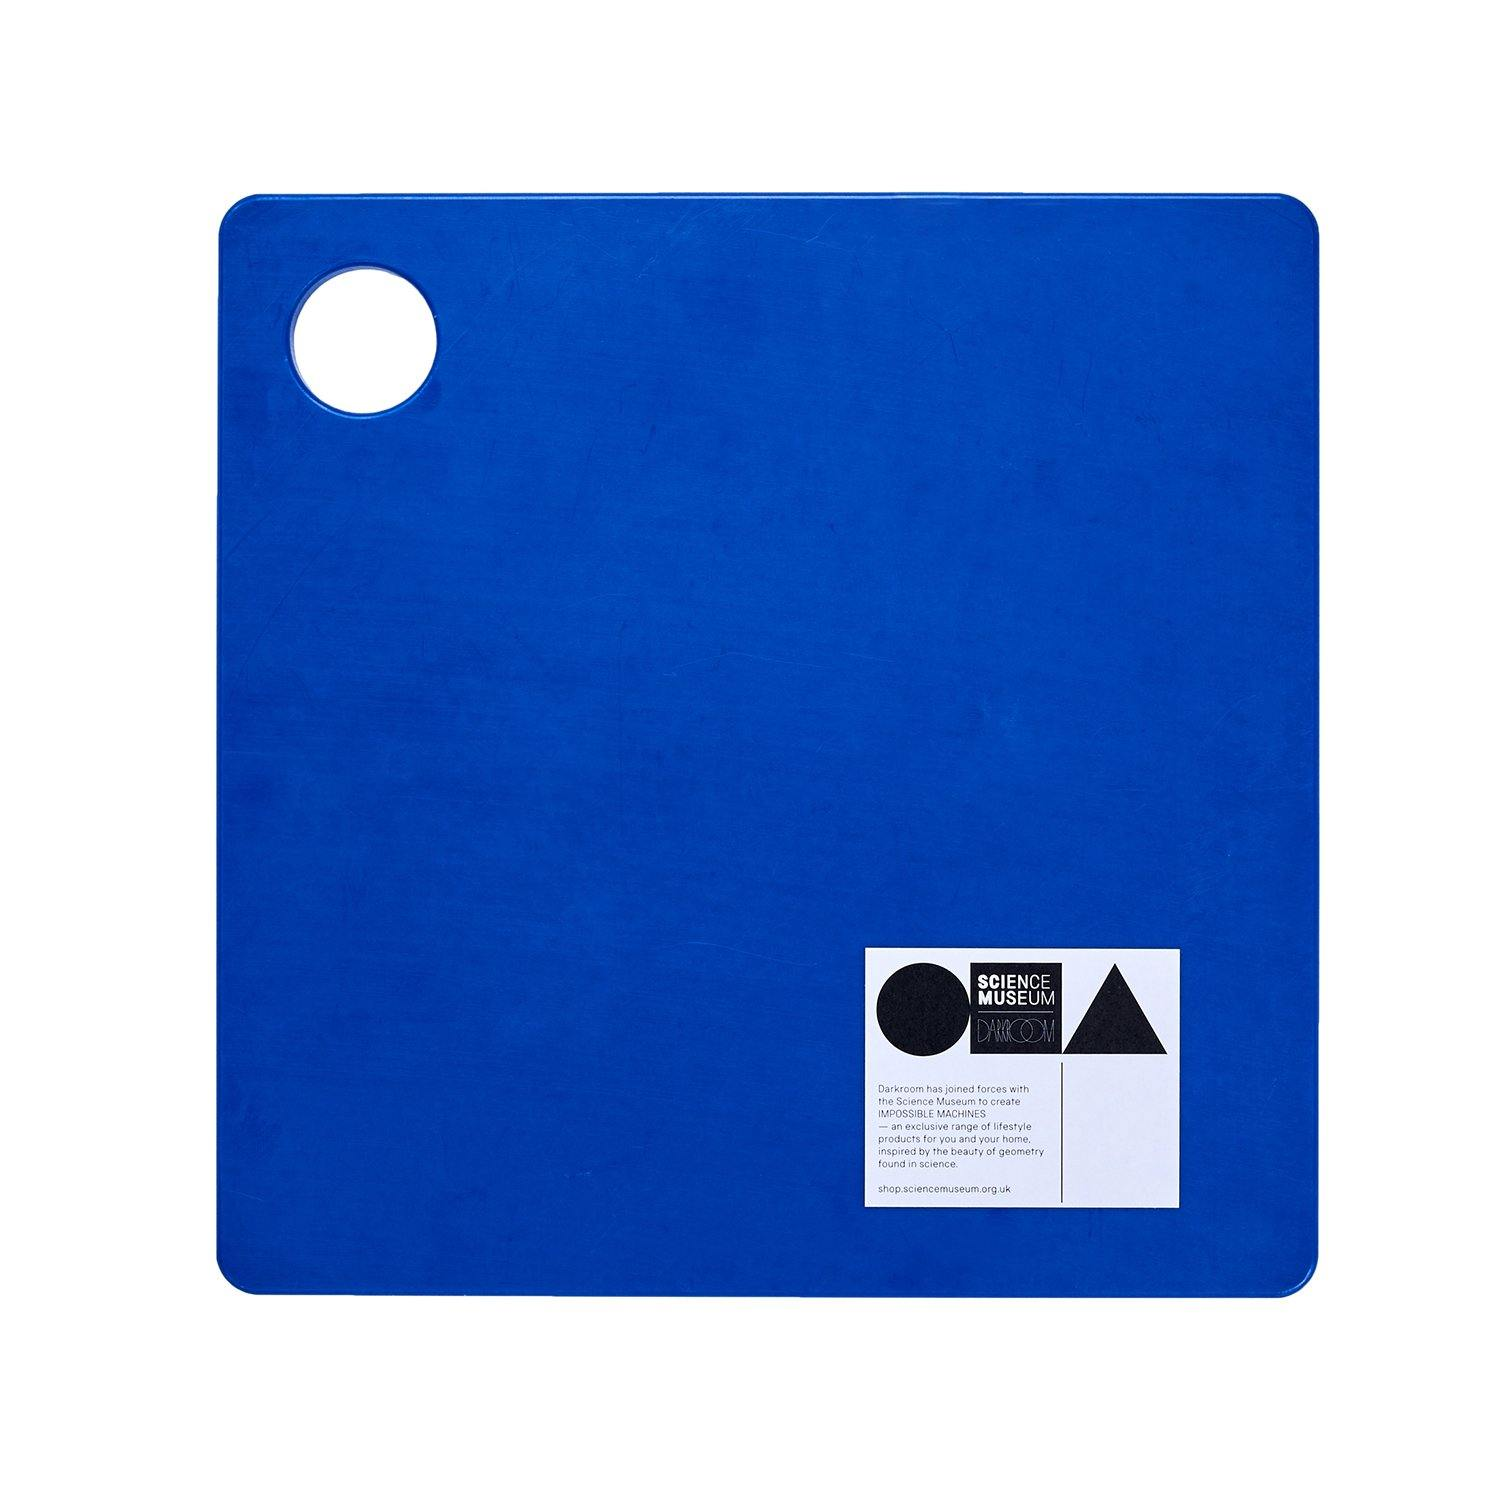 Science Museum Impossible Machines Chopping Board Blue 3